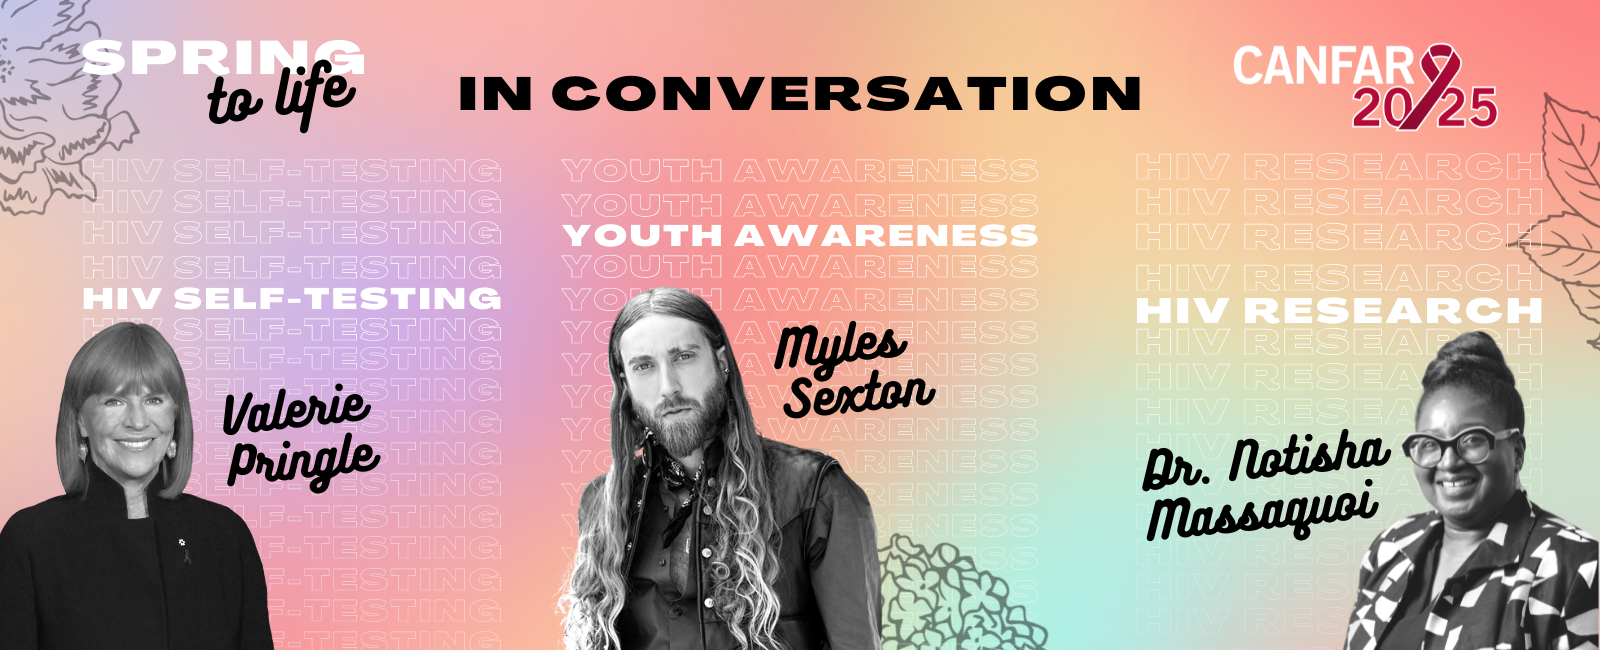 Spring to Life - In Convo